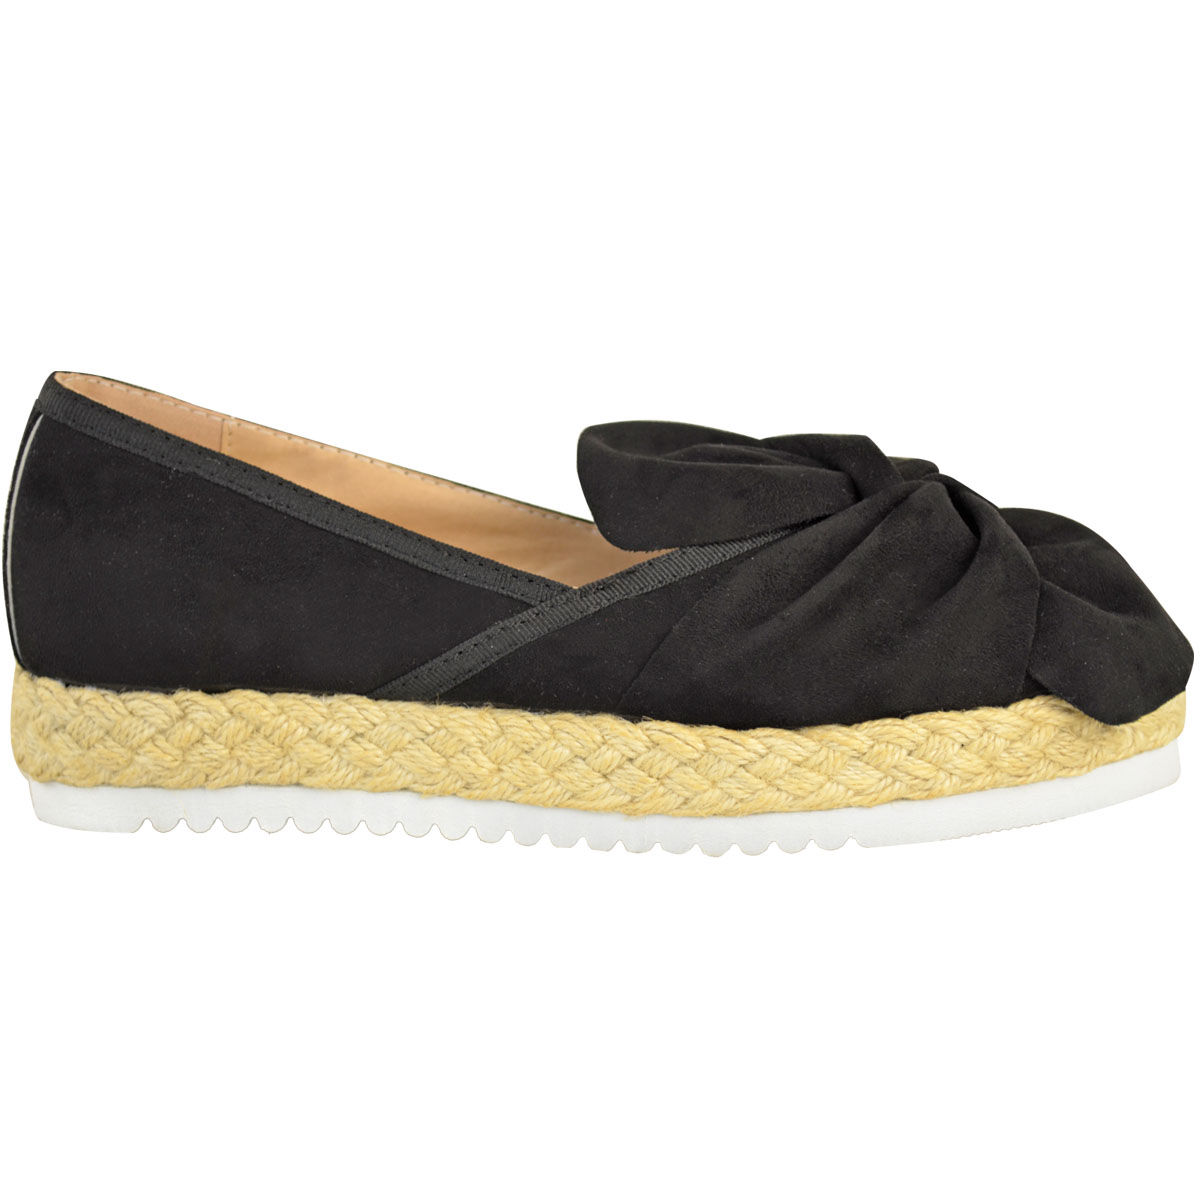 Womens-Ladies-Espadrilles-Flat-Pom-Pom-Sandals-Slip-On-Strappy-Comfy-Size-Shoes thumbnail 35